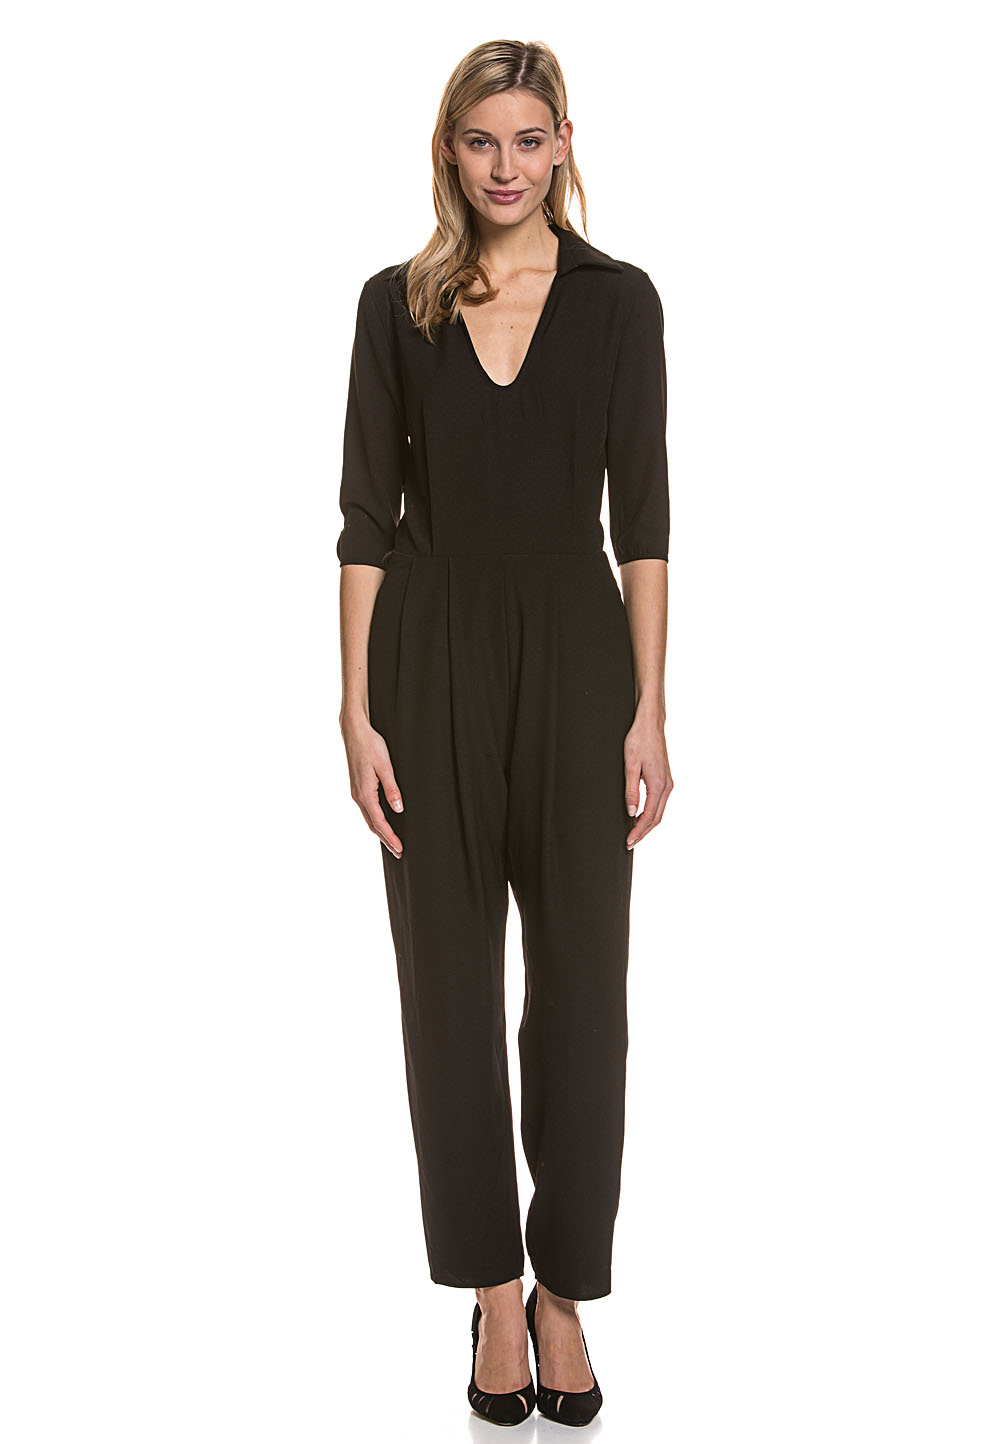 It is a picture of Intrepid The Fifth Label Moonlit Jumpsuit